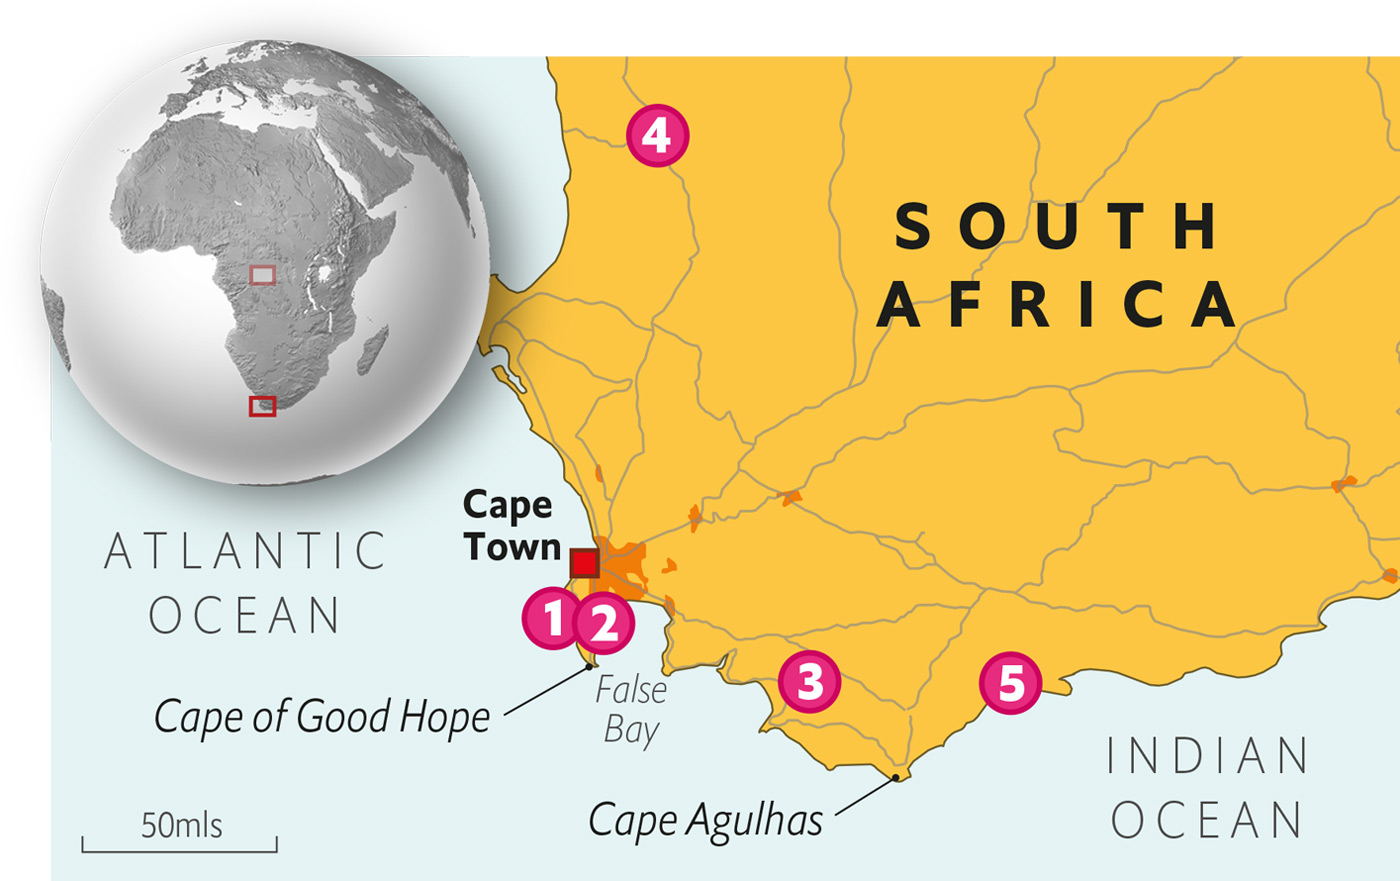 Cape Town | 1843 Map Cape Of Good Hope on mount kilimanjaro map, boulders beach, strait of magellan map, vasco da gama, cape horn, mediterranean sea map, strait of hormuz, drakensberg mountains map, horn of africa map, mount kilimanjaro, strait of gibraltar map, indian ocean map, mossel bay, caribbean sea map, congo basin map, ferdinand magellan, cape agulhas, peru map, lake victoria map, strait of malacca, bering strait, bartolomeu dias, atlas mountains map, world map, cape of africa, suez canal, namib desert map, cape hope south america, red sea map, robben island, gulf of guinea map, cape peninsula, cape town, strait of magellan, madagascar map, castle of good hope, great rift valley map, cape point,